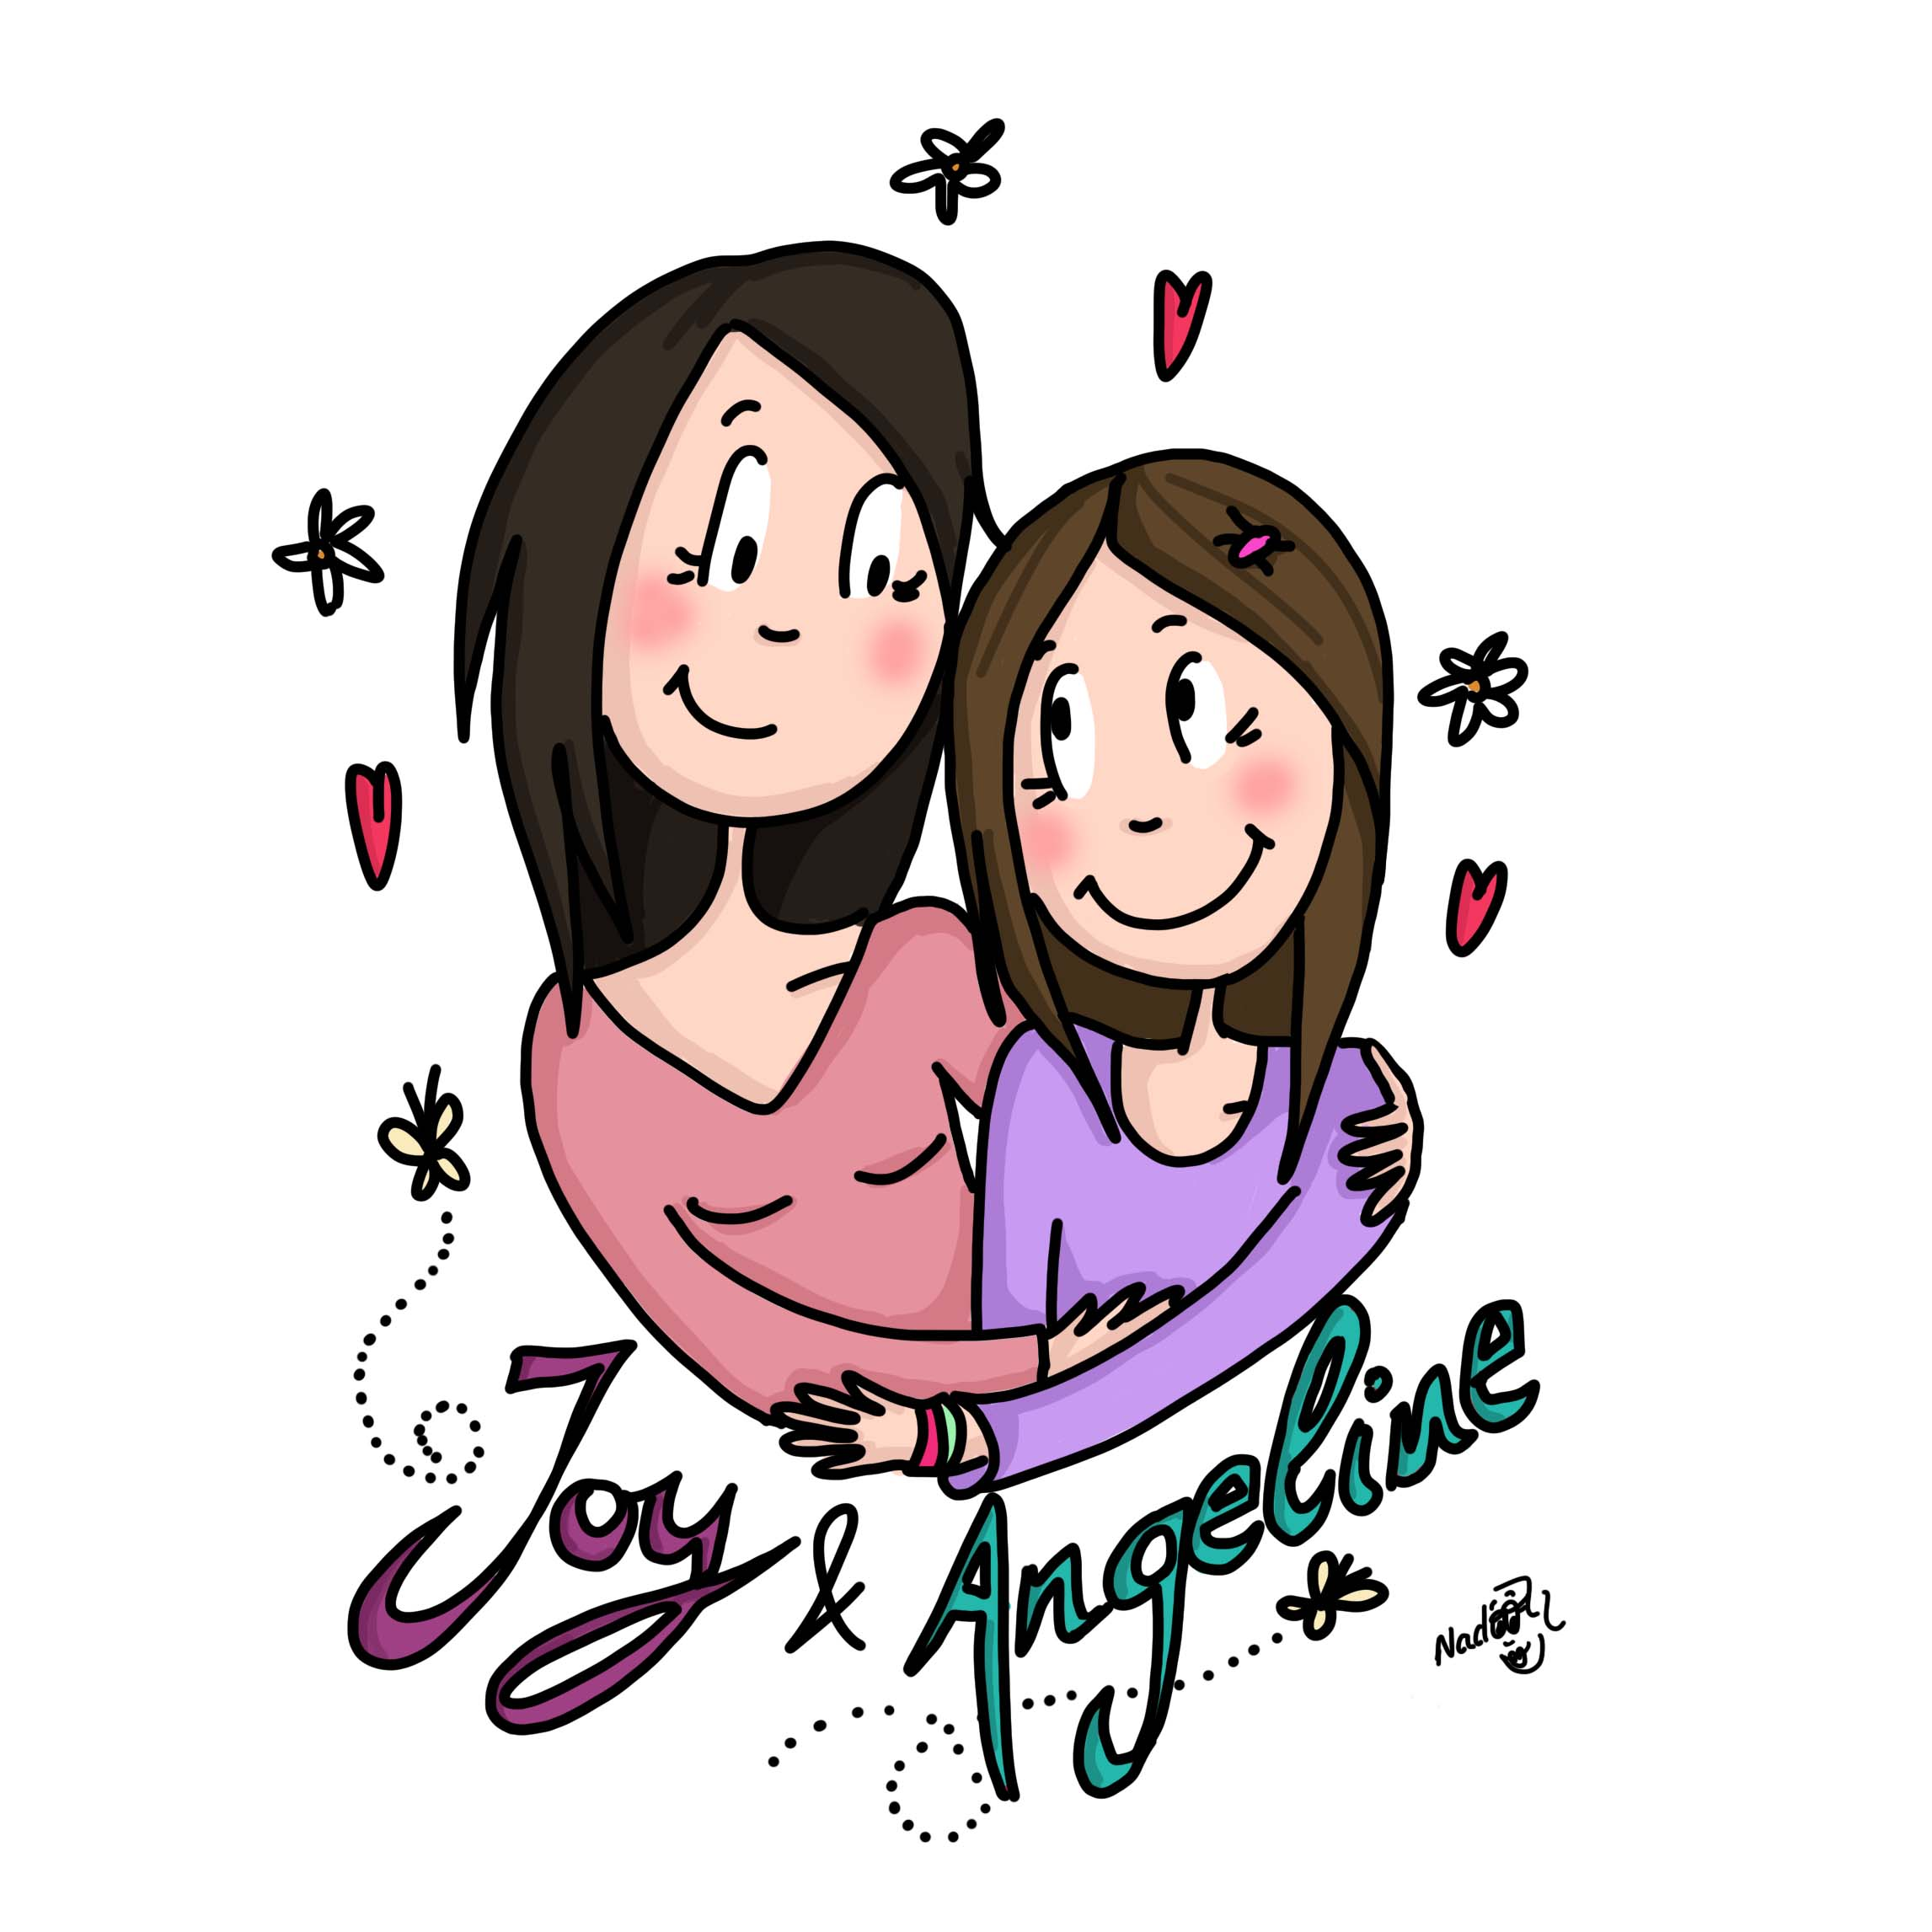 Joy & Angeline